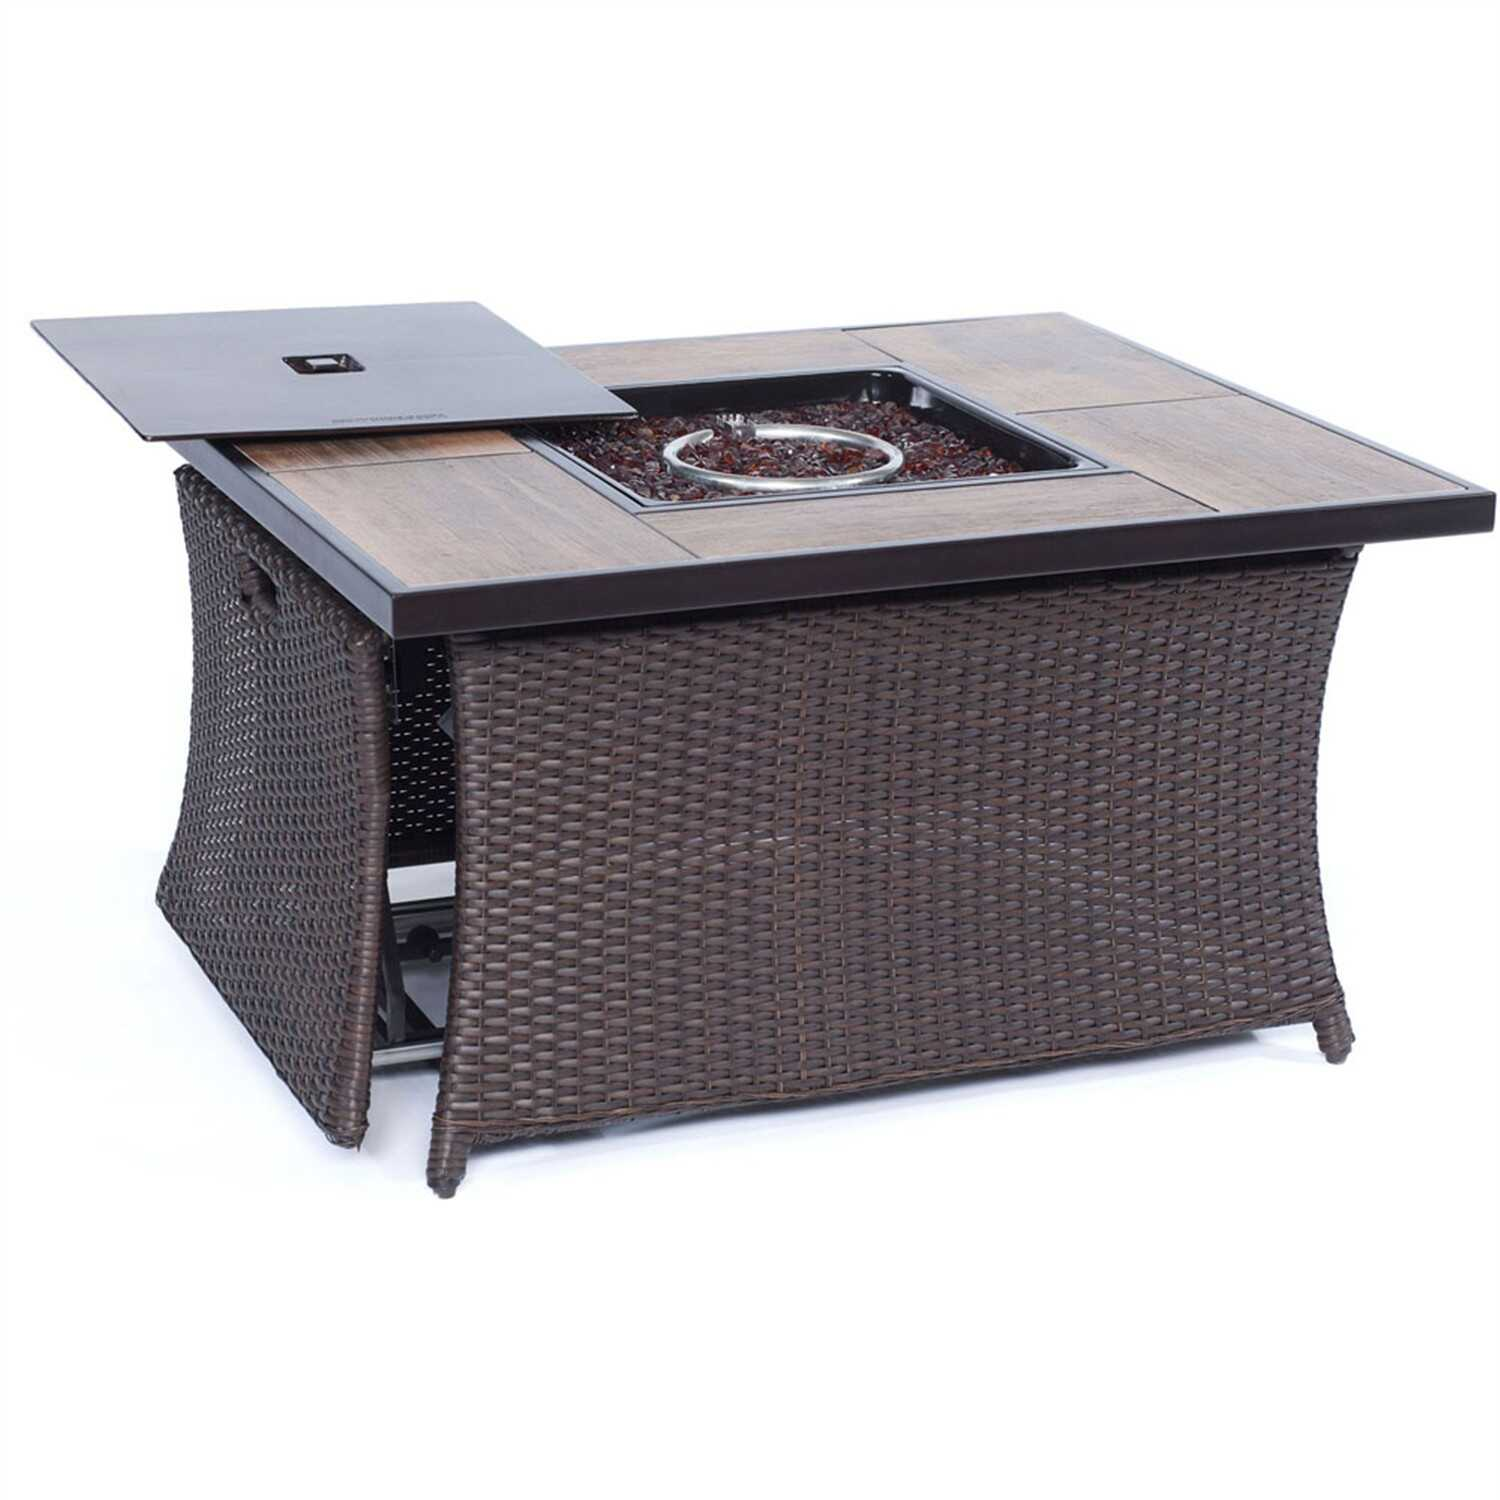 Hanover  Coffee Table  LP Gas  Metal  23.5 in. H x 35.8 in. W x 43.8 in. D Outdoor Fireplace